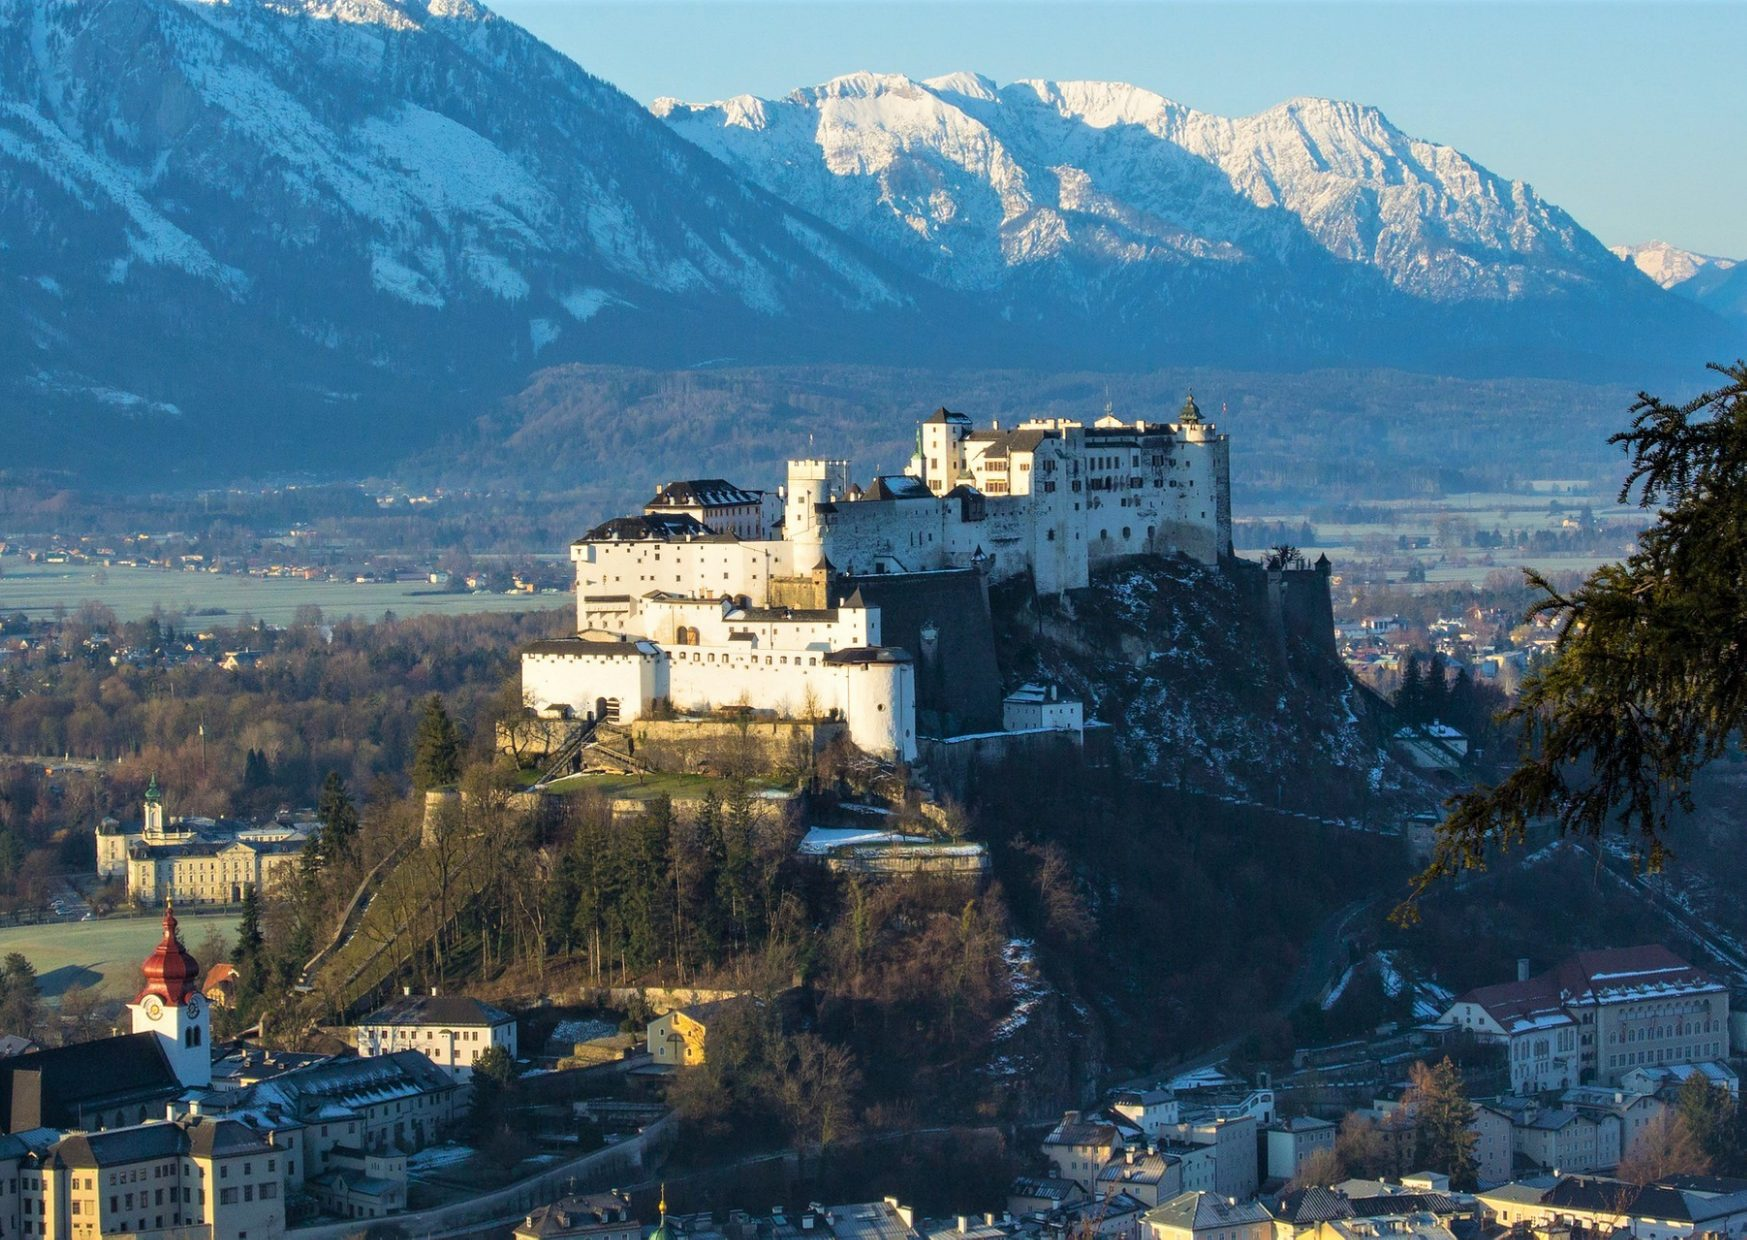 What will you see at the Fortress Salzburg - photo by Voices of Travel